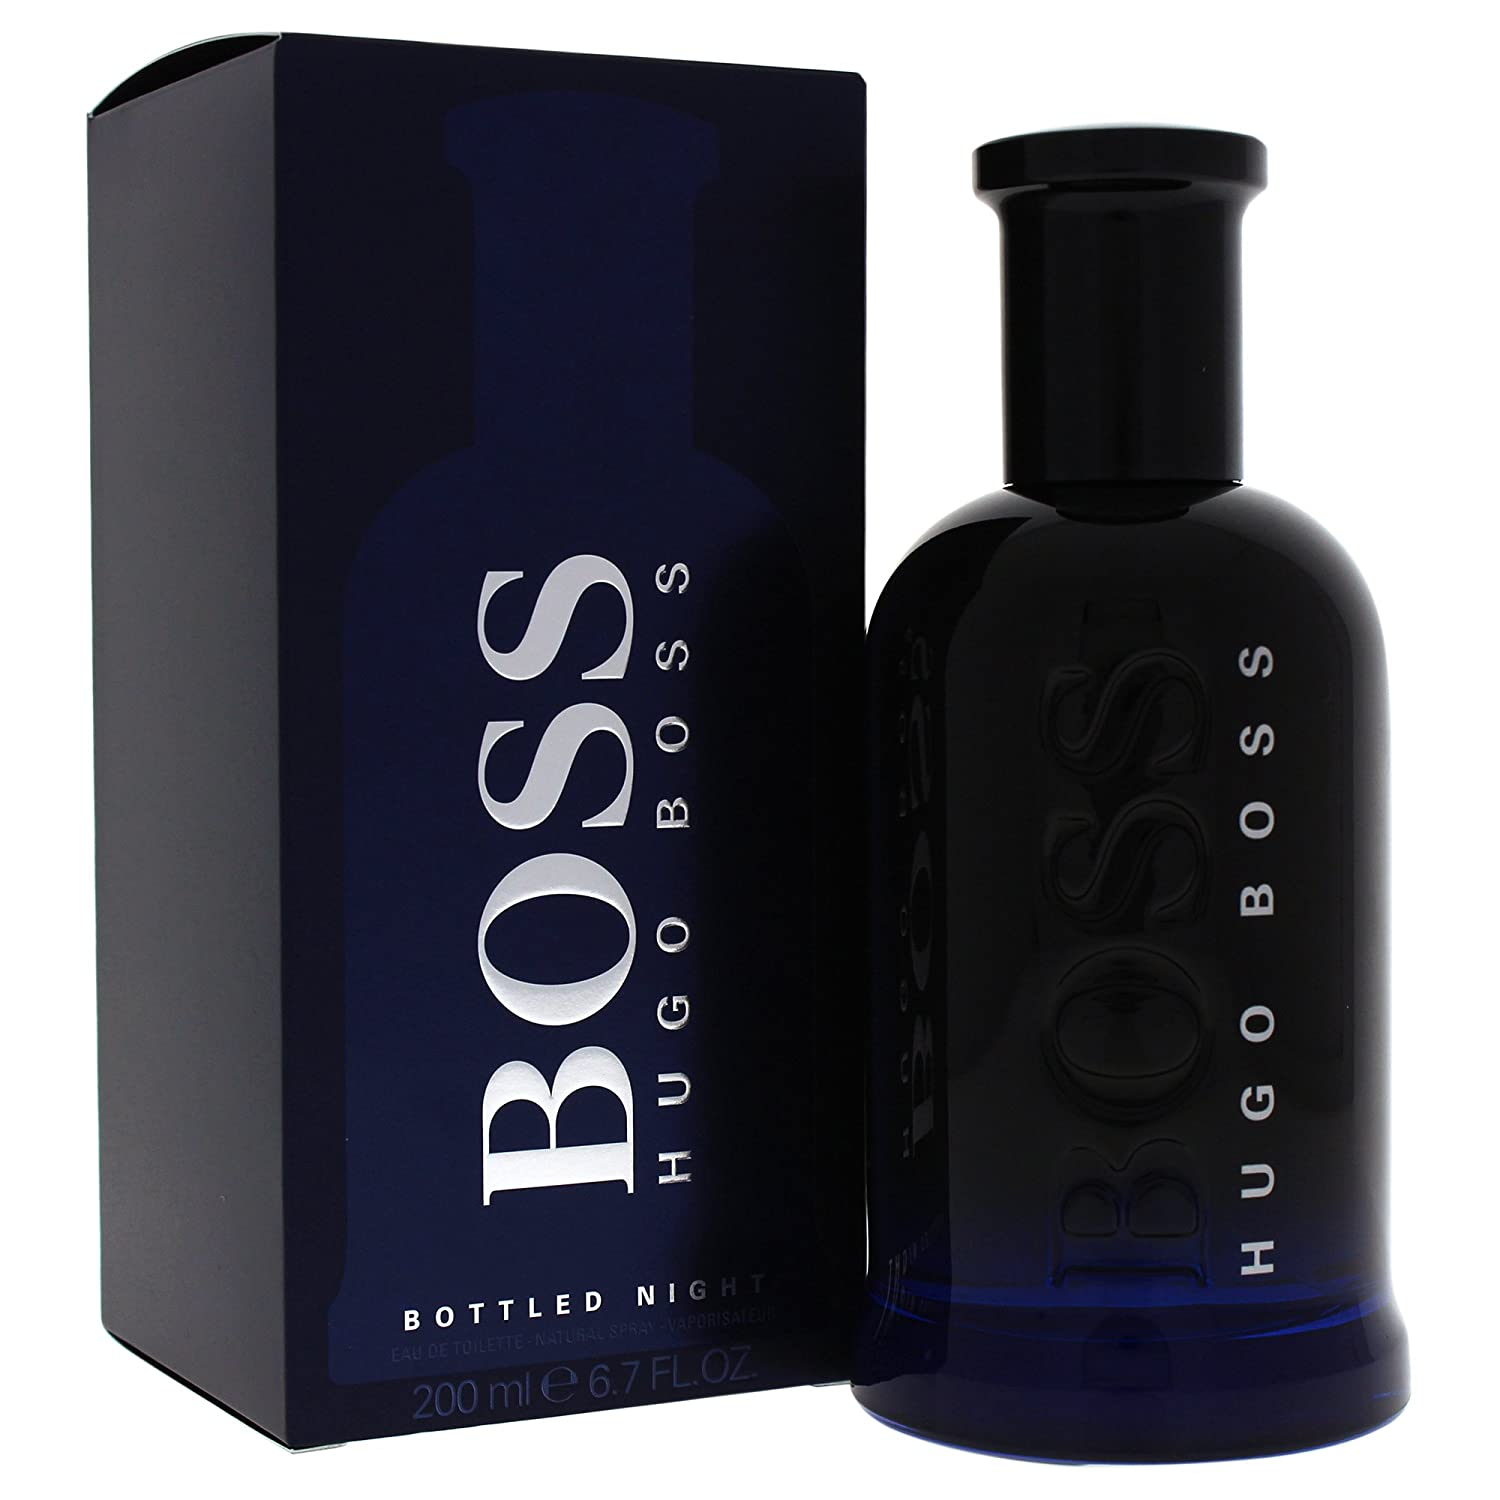 Boss - Bottled Night - Eau de Toilette para hombres - 30 ml: Amazon.es: Belleza